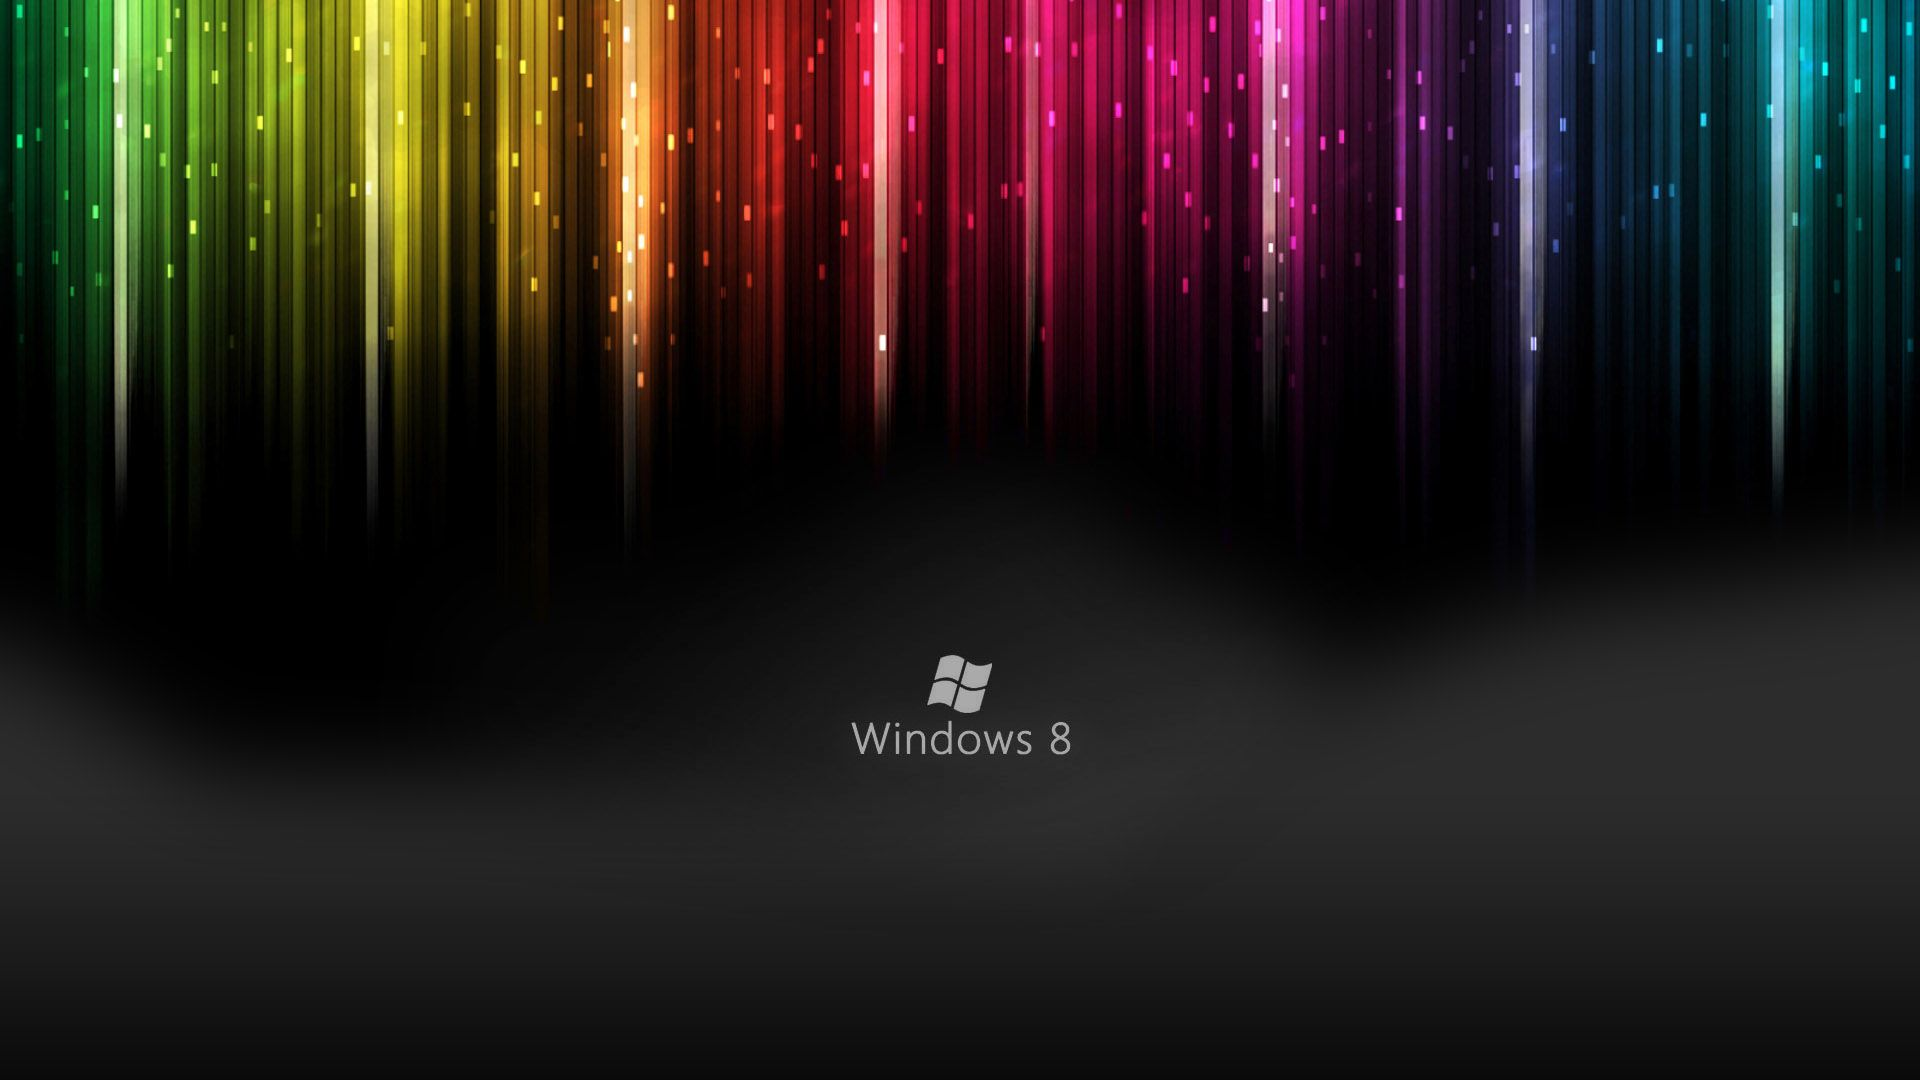 Windows 8 Live Wallpapers Windows Wallpaper Hd Wallpaper Desktop Live Wallpapers